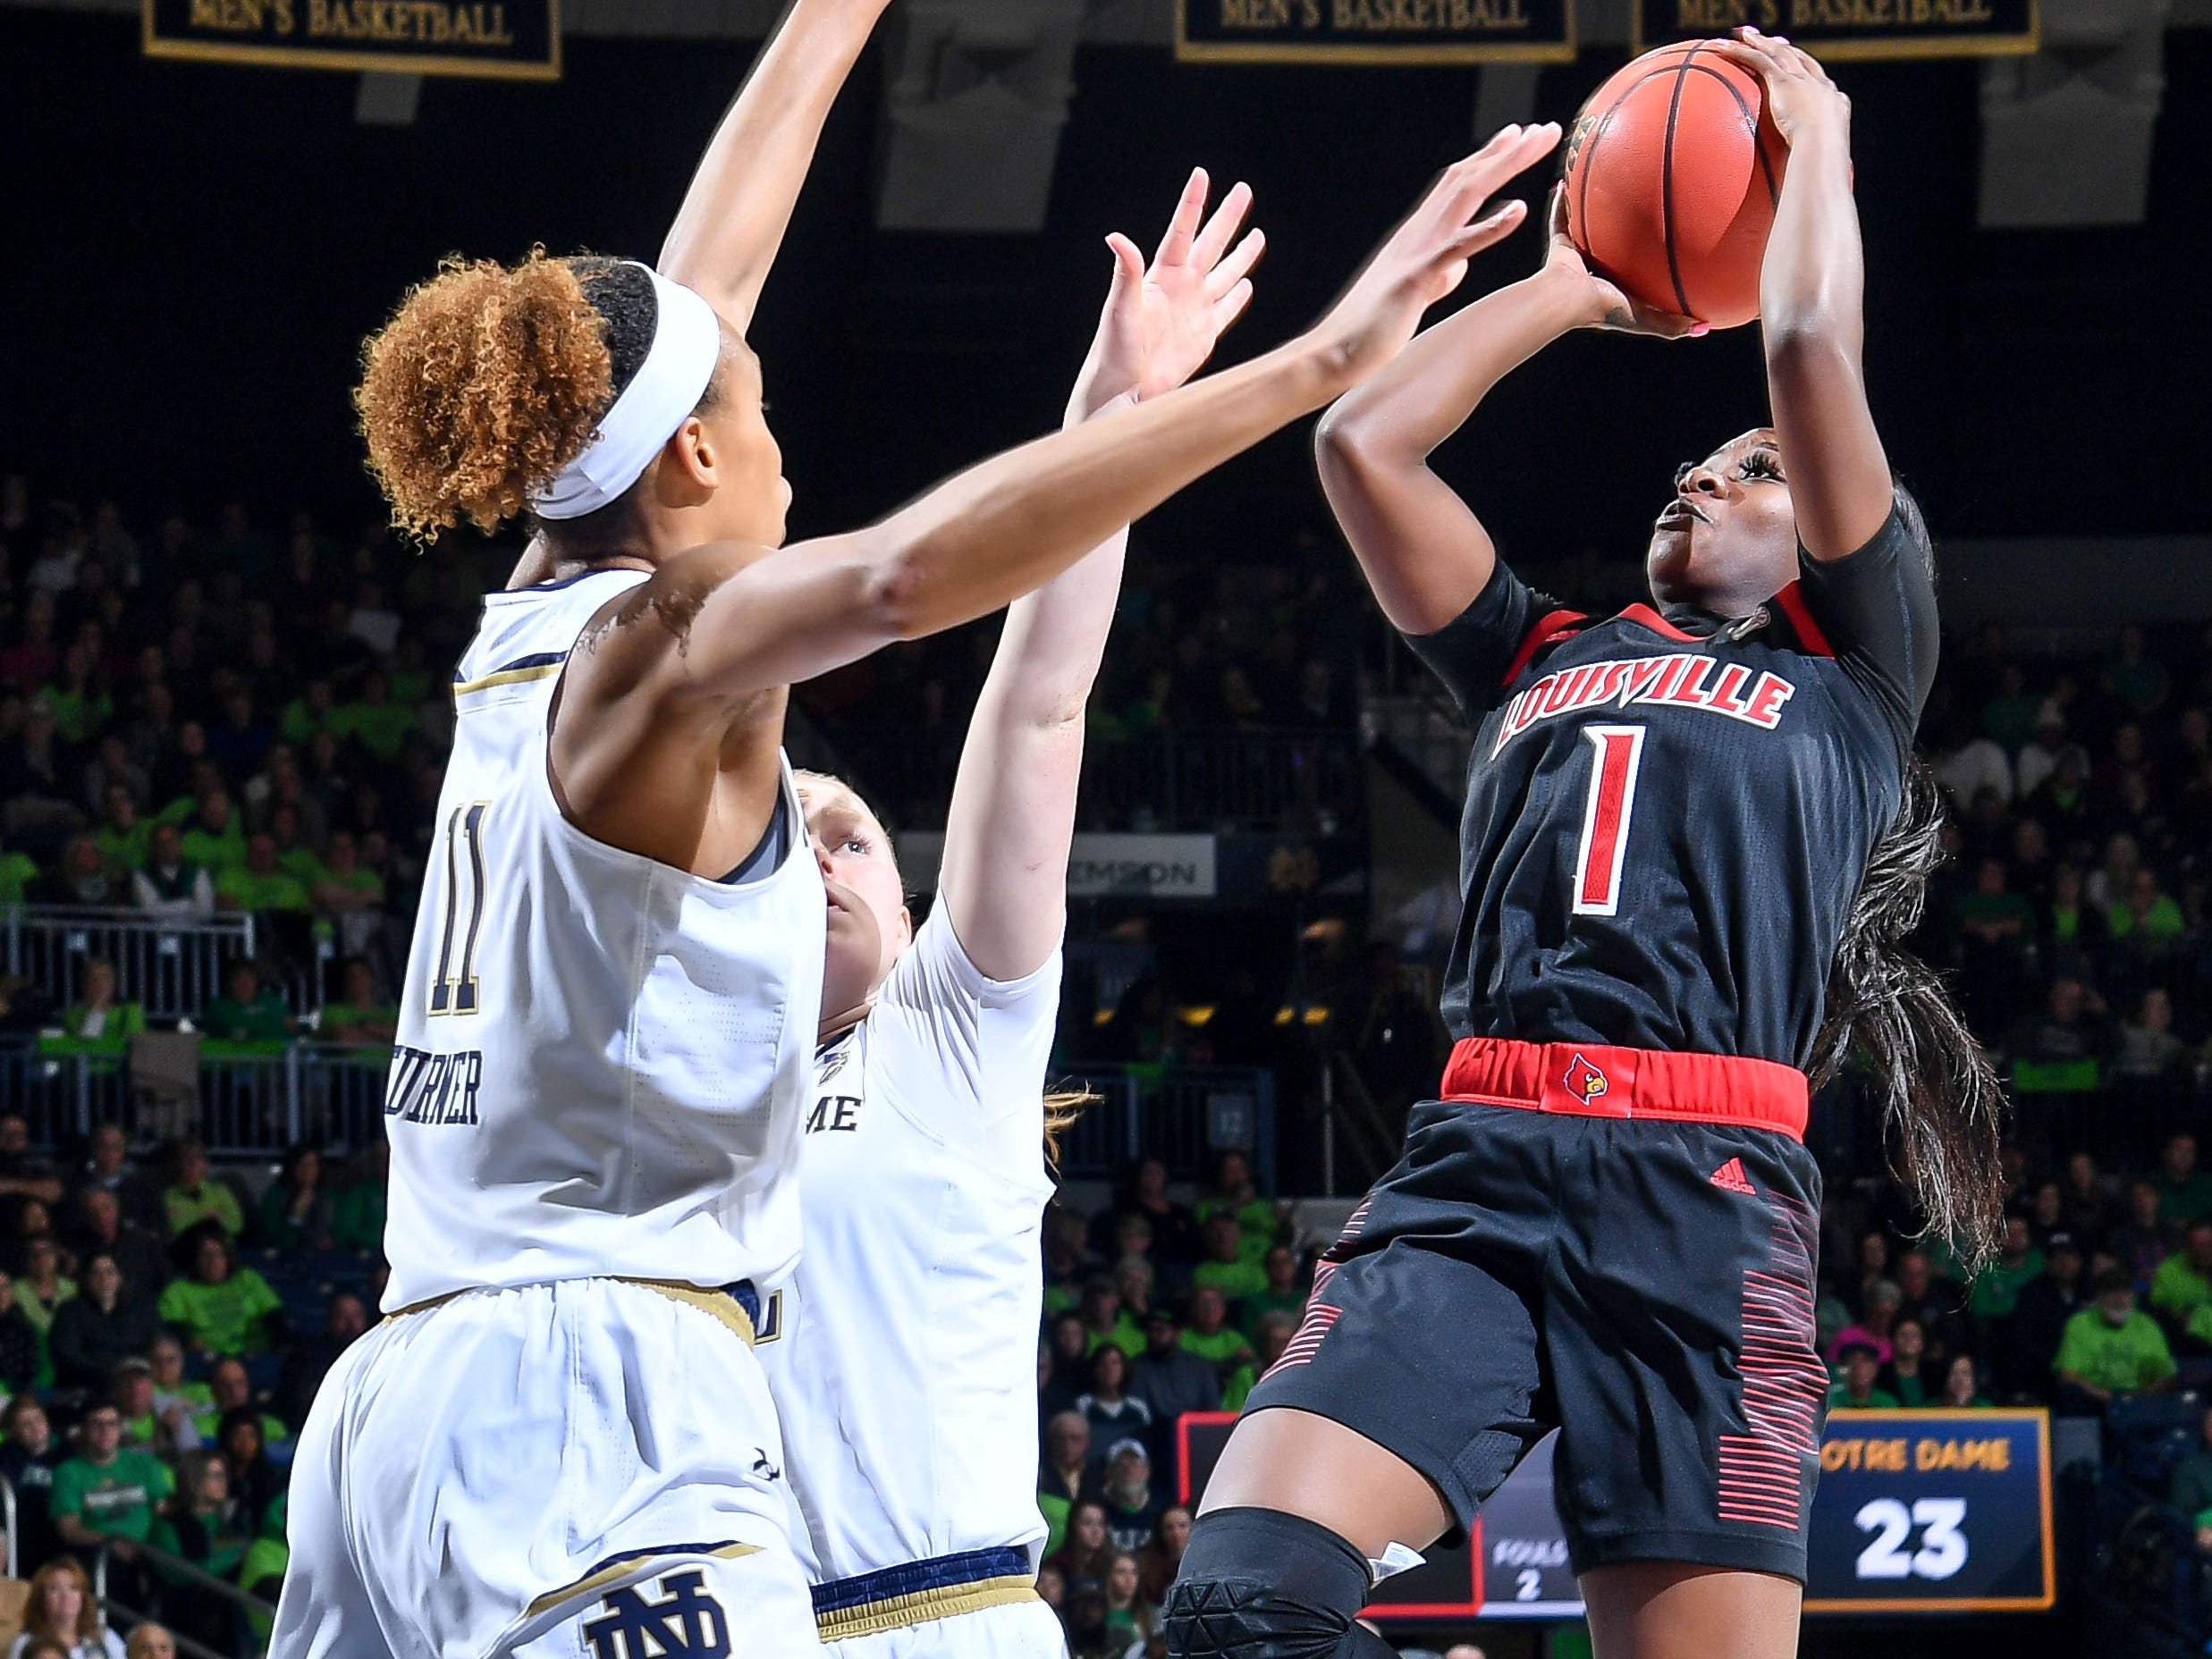 Jan 10, 2019; South Bend, IN, USA; Louisville Cardinals guard Dana Evans (1) goes up for a shot as Notre Dame Fighting Irish forward Brianna Turner (11) defends in the first half at the Purcell Pavilion. Mandatory Credit: Matt Cashore-USA TODAY Sports